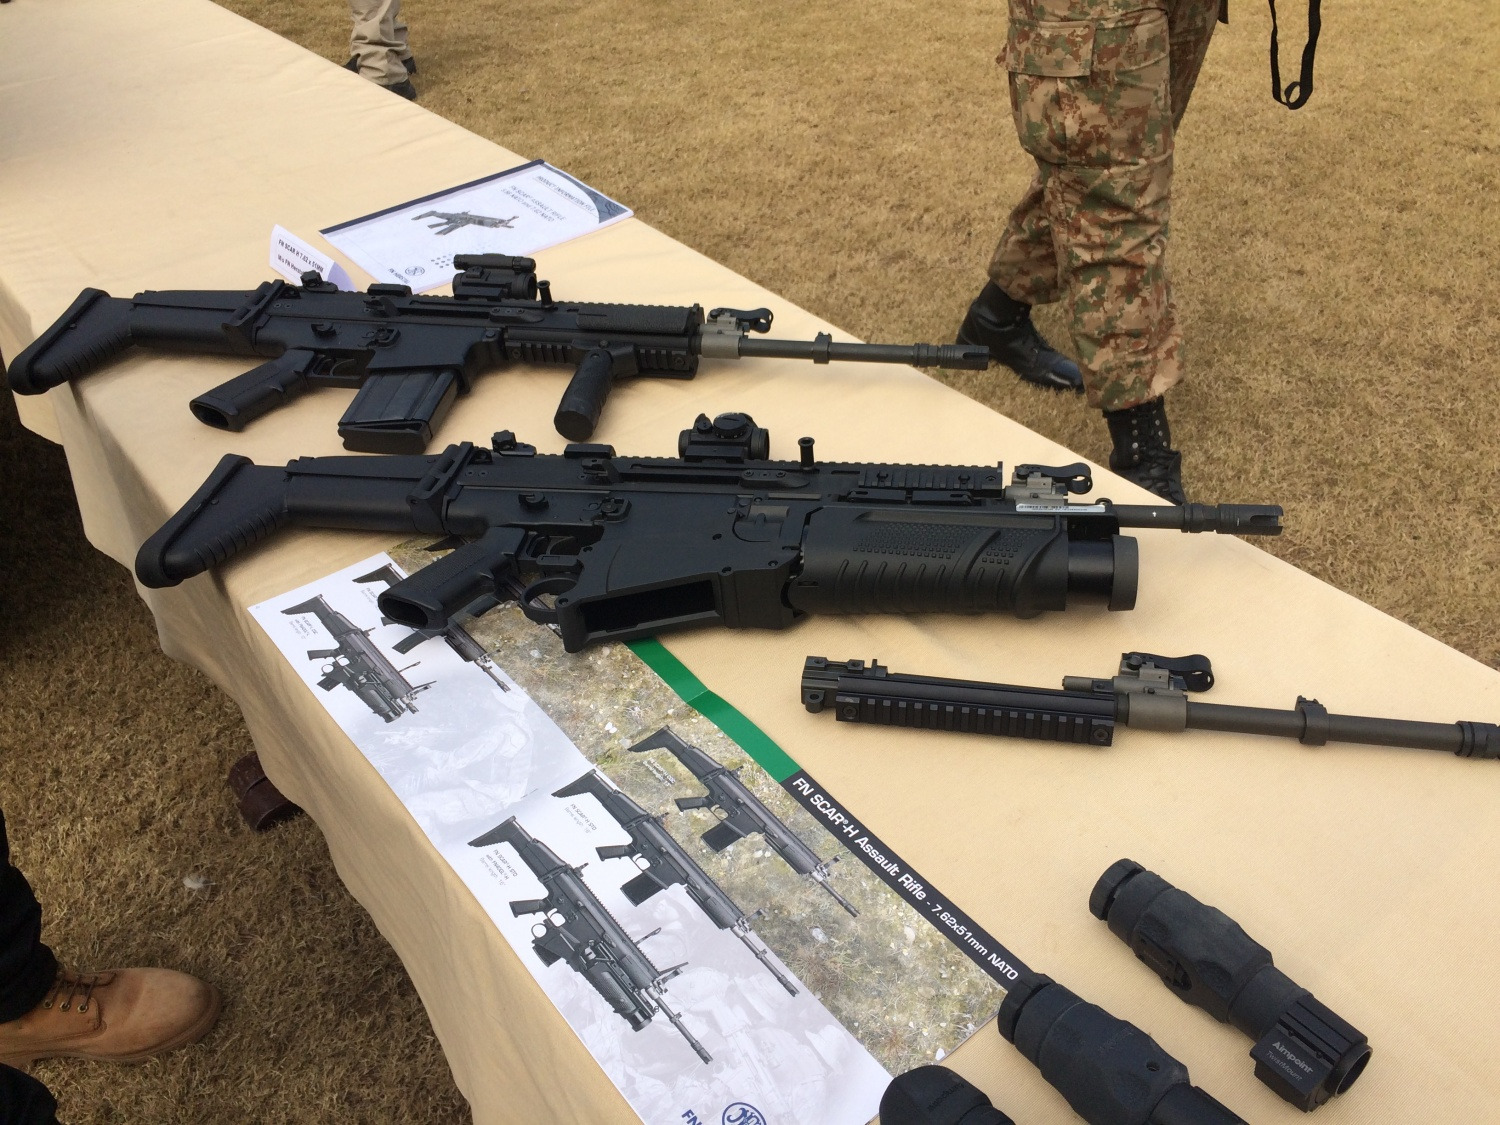 FN SCAR-H with CompM5 in Pakistan, January 2016